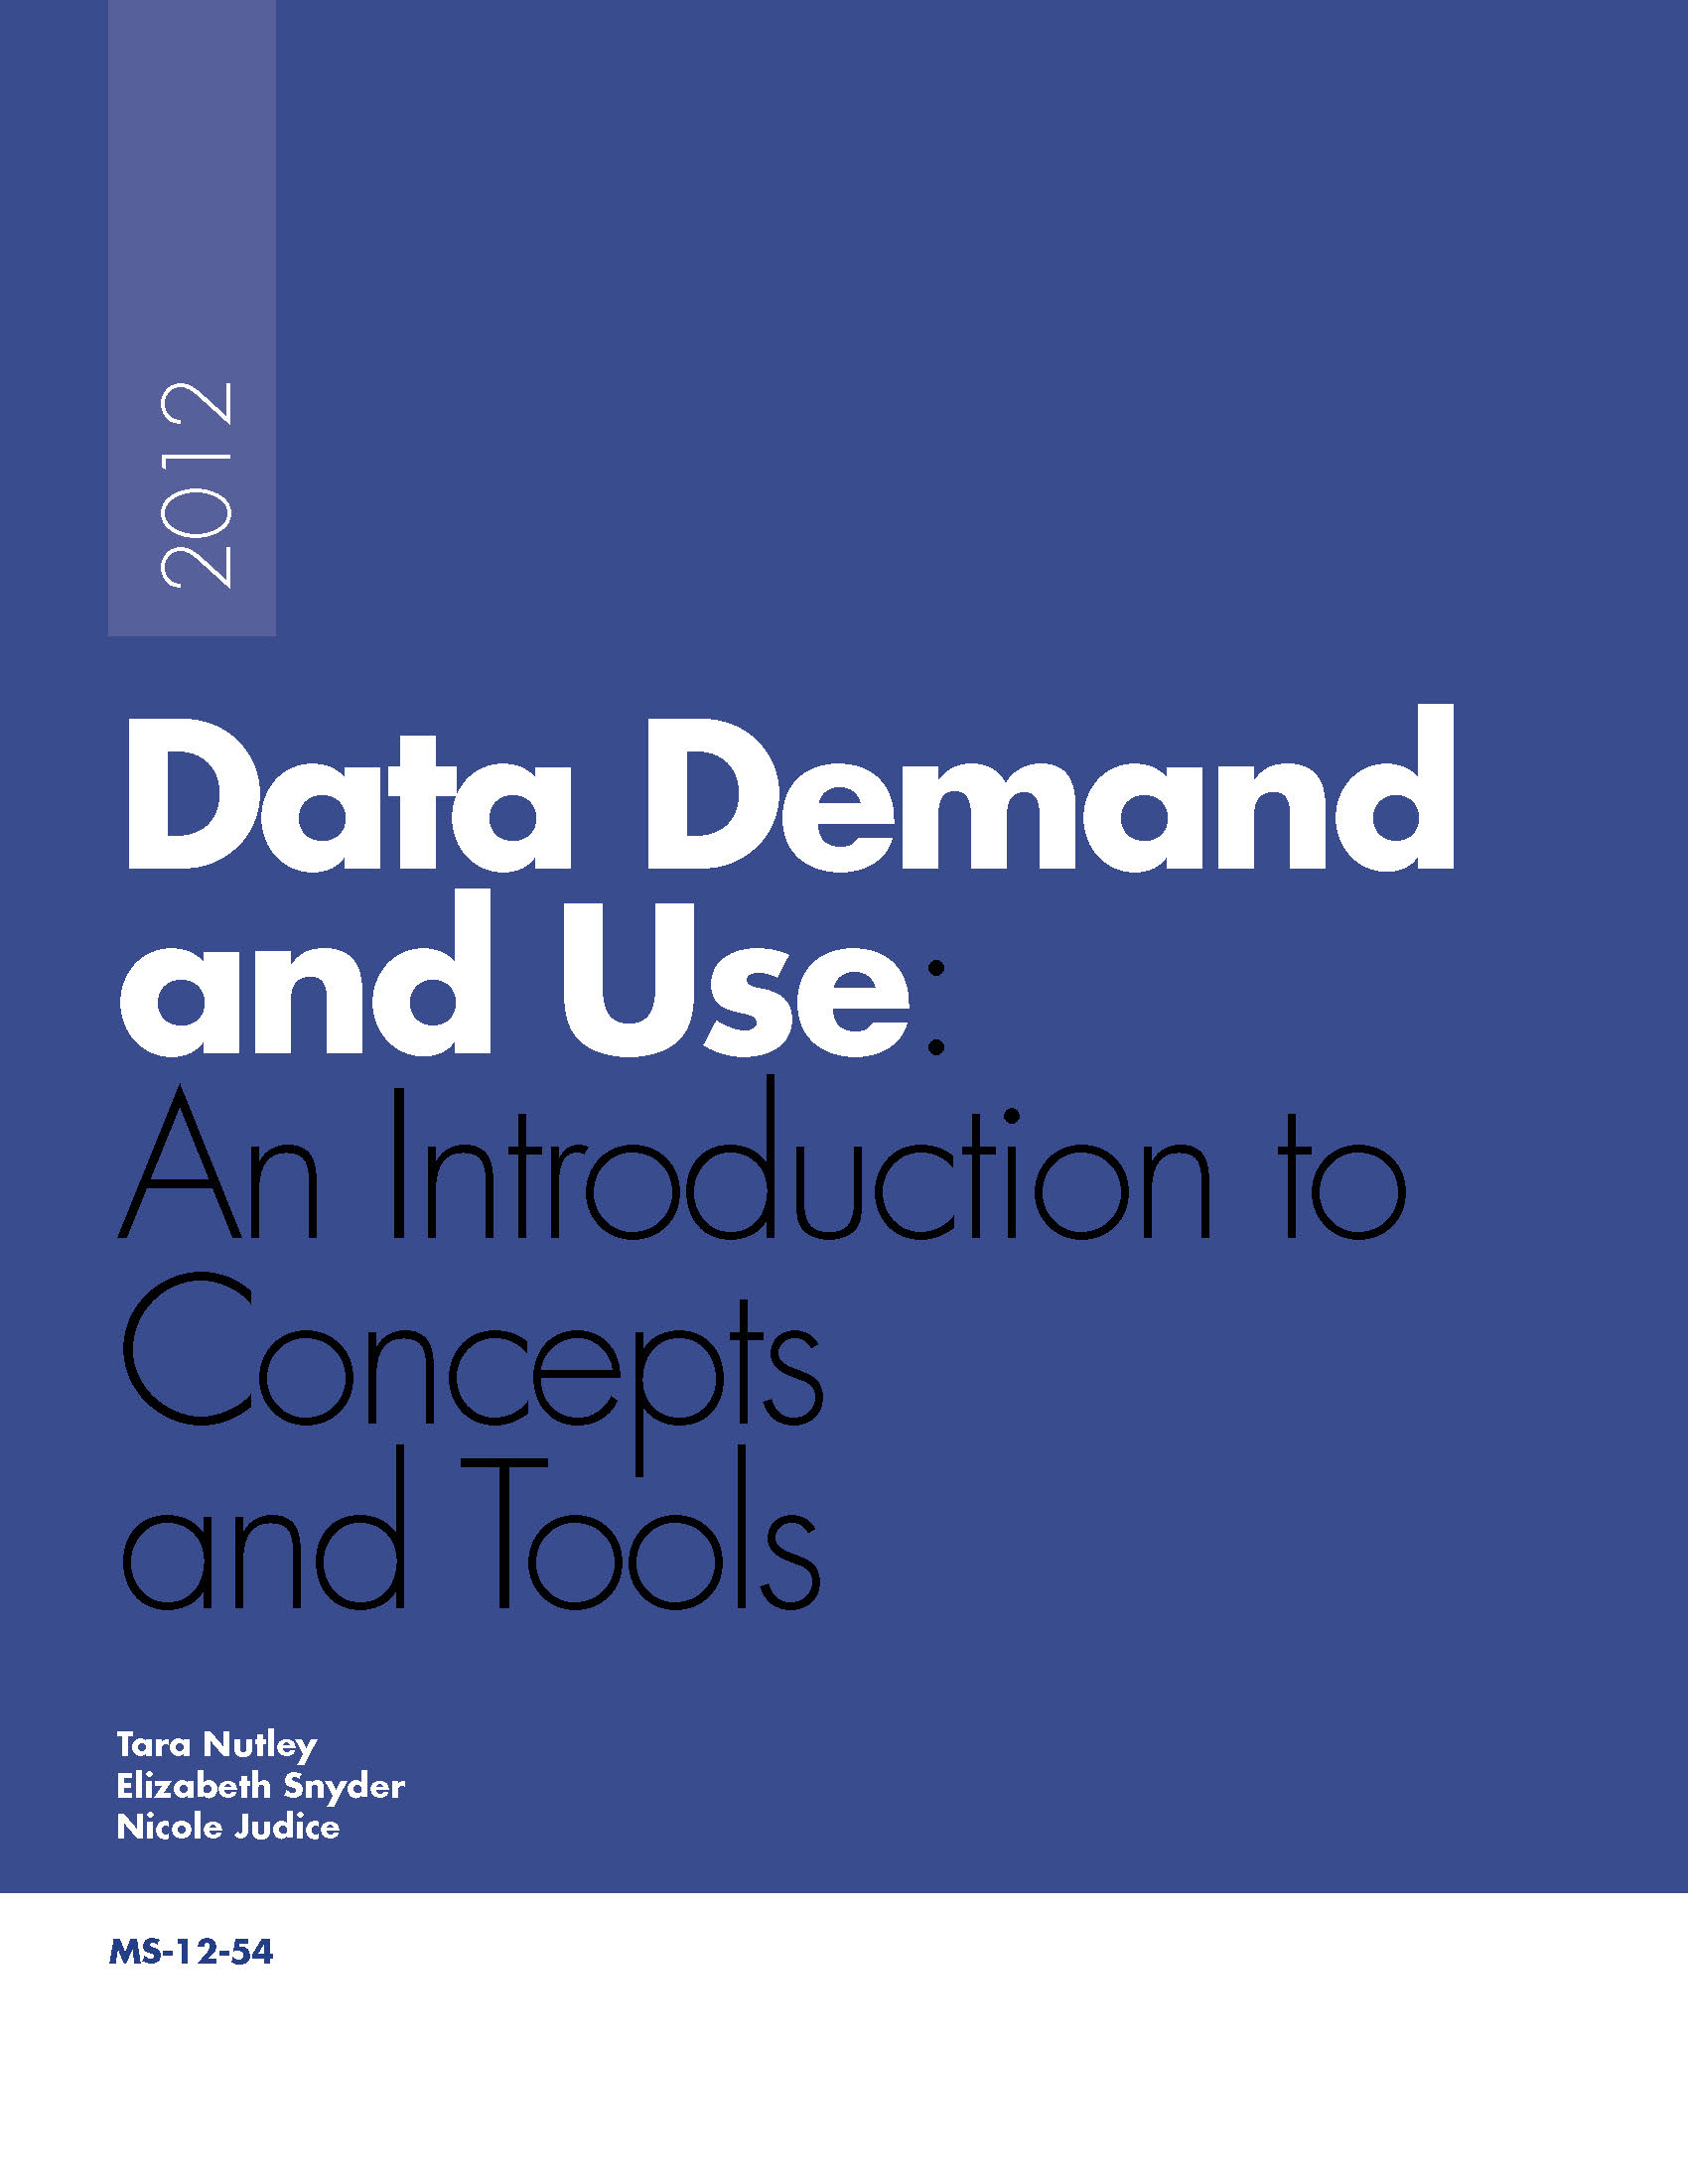 Data Demand and Use: An Introduction to Concepts and Tools